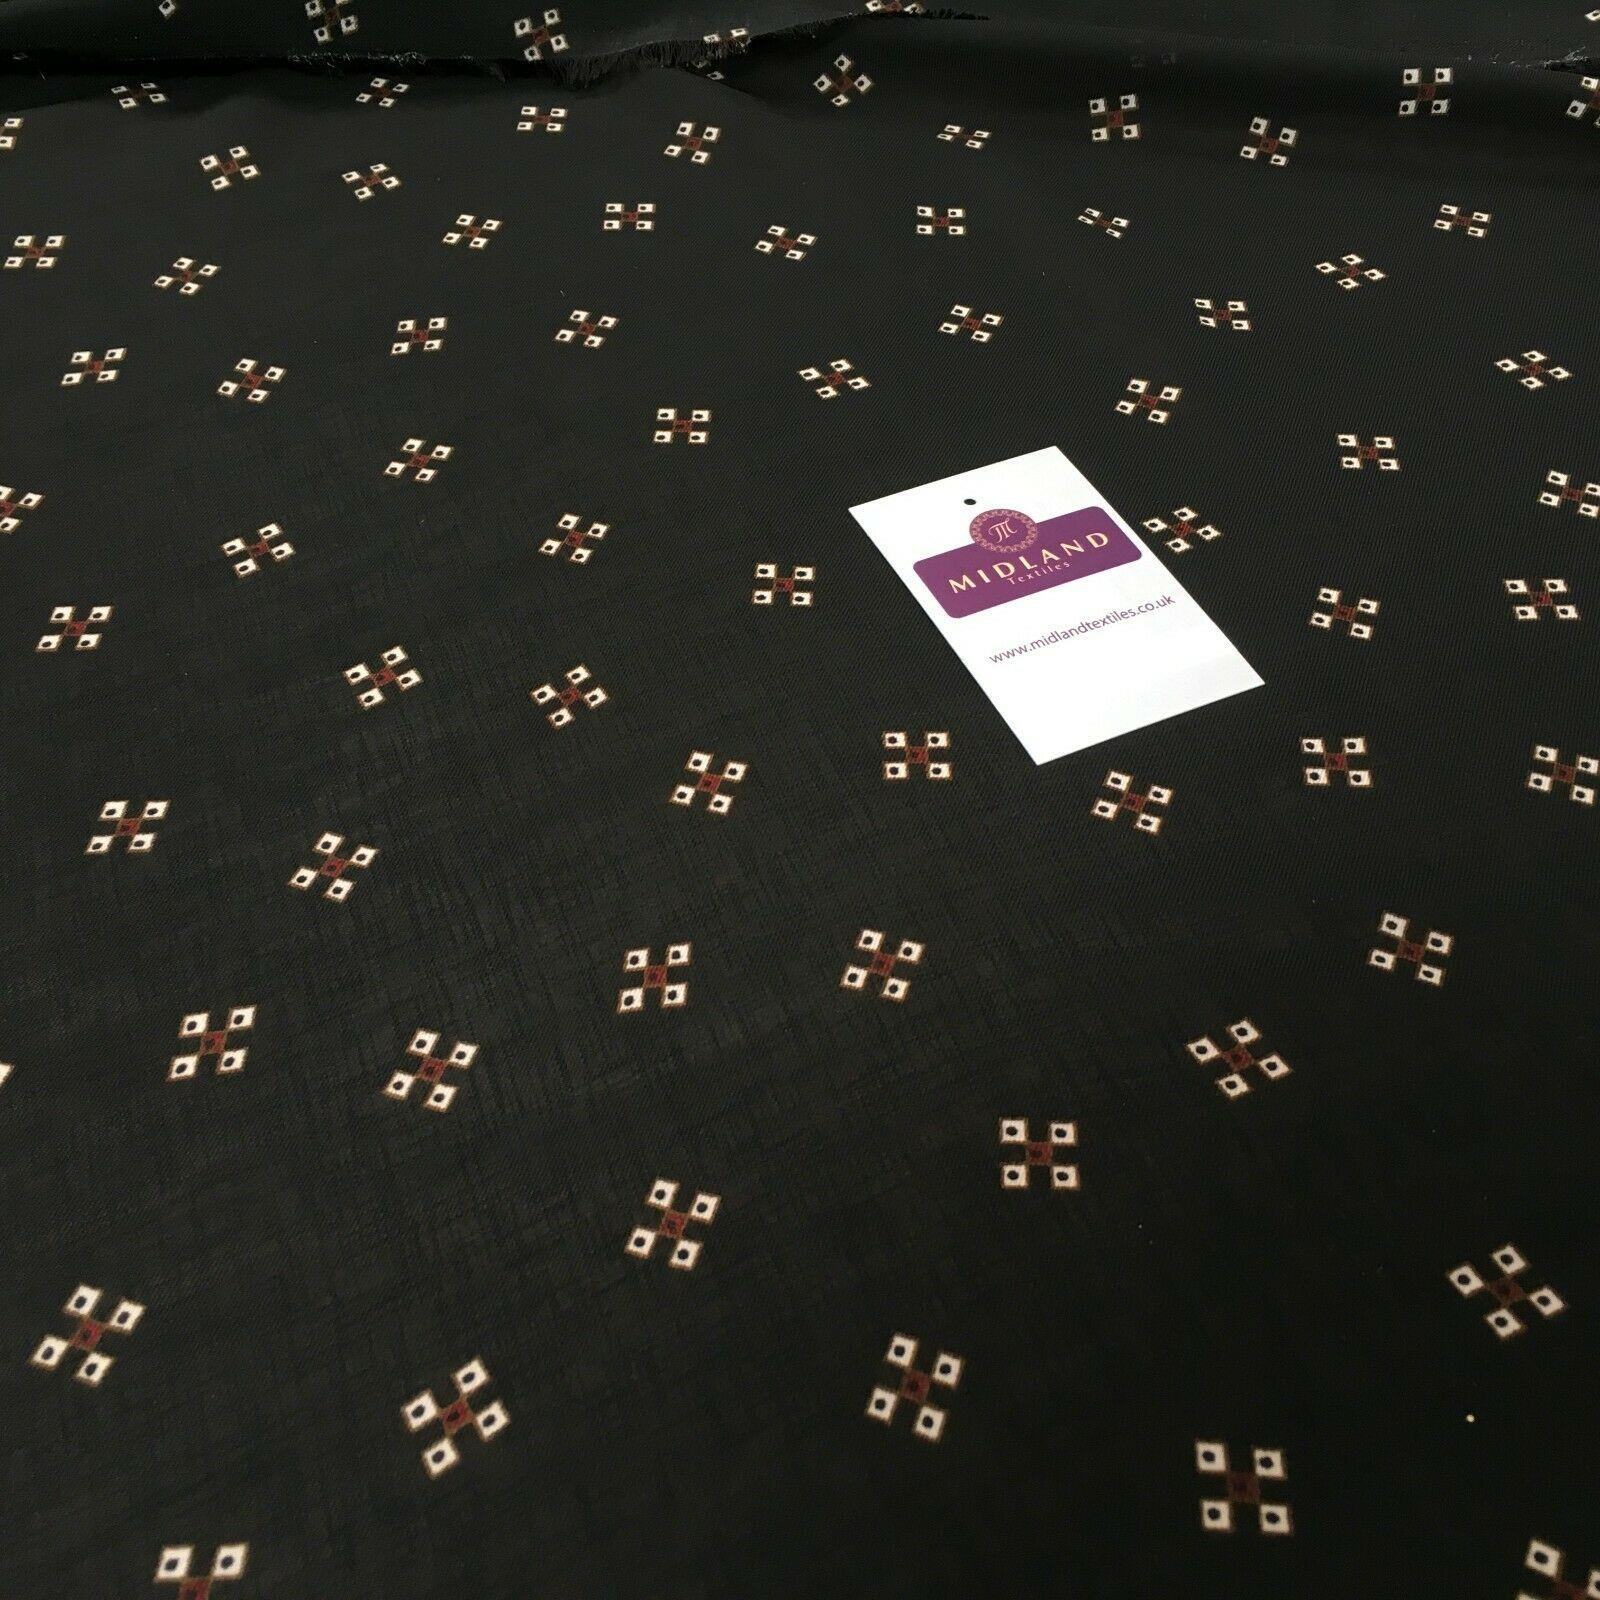 Black Georgette crepe Linen effect dress Fabric 150cm wide MK1095-25 Mtex